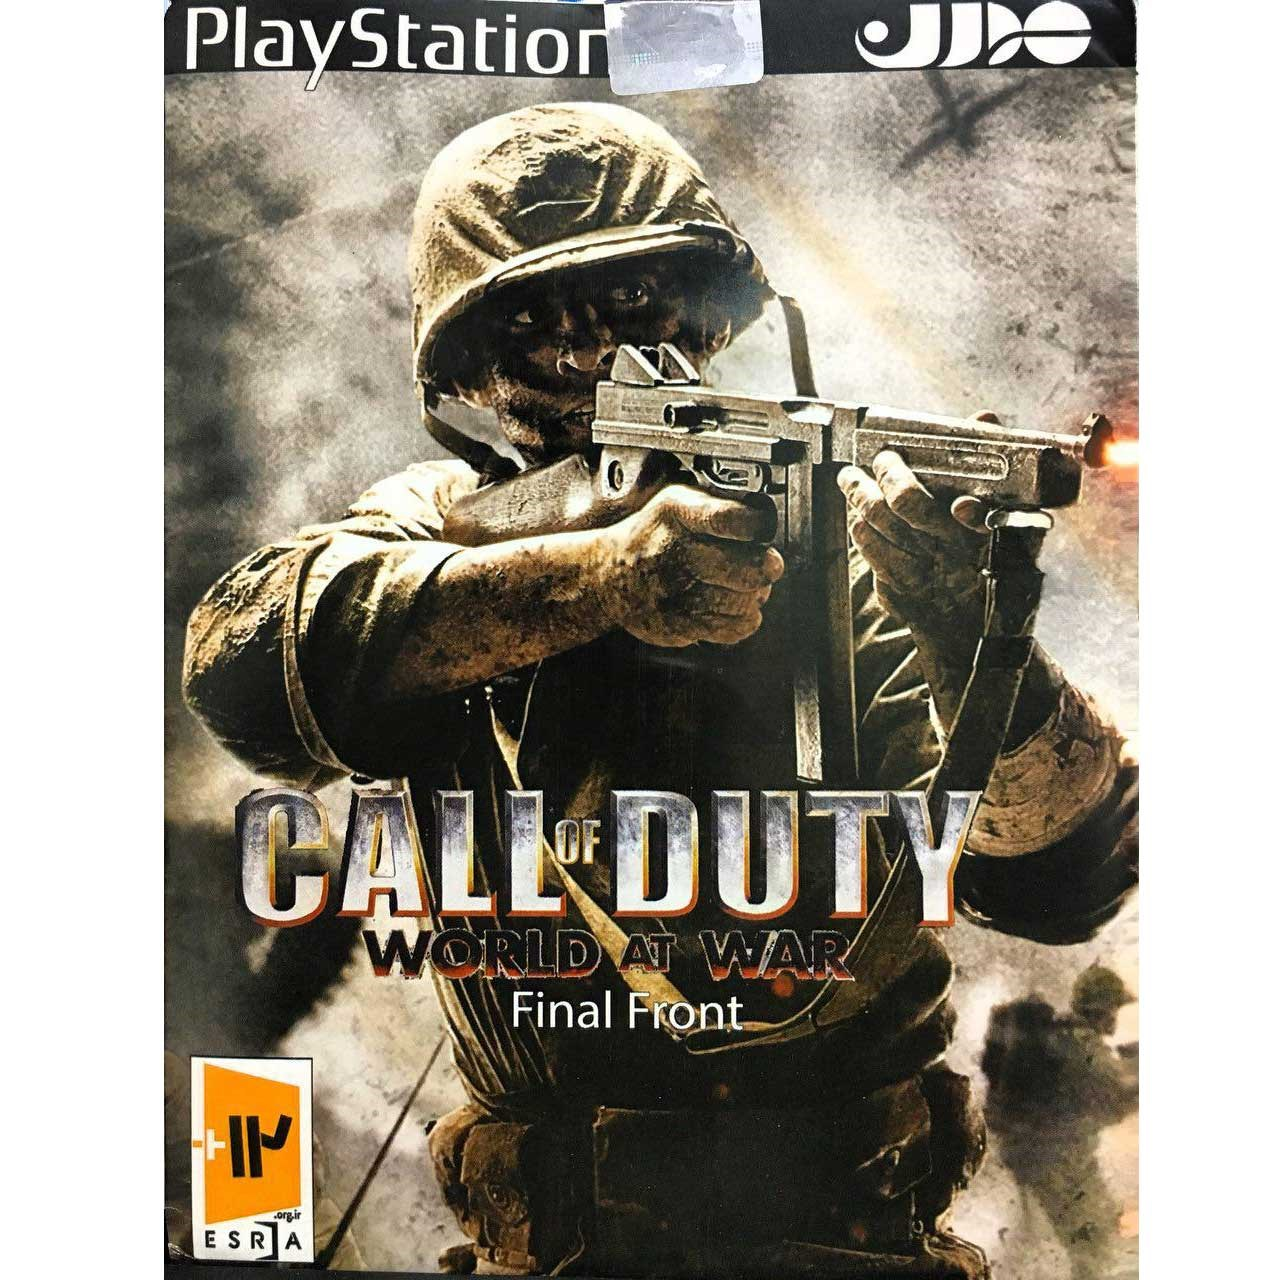 بازی CALL OF DUTY 5 WORLD AT WAR FINAL FRONT مخصوص PS2